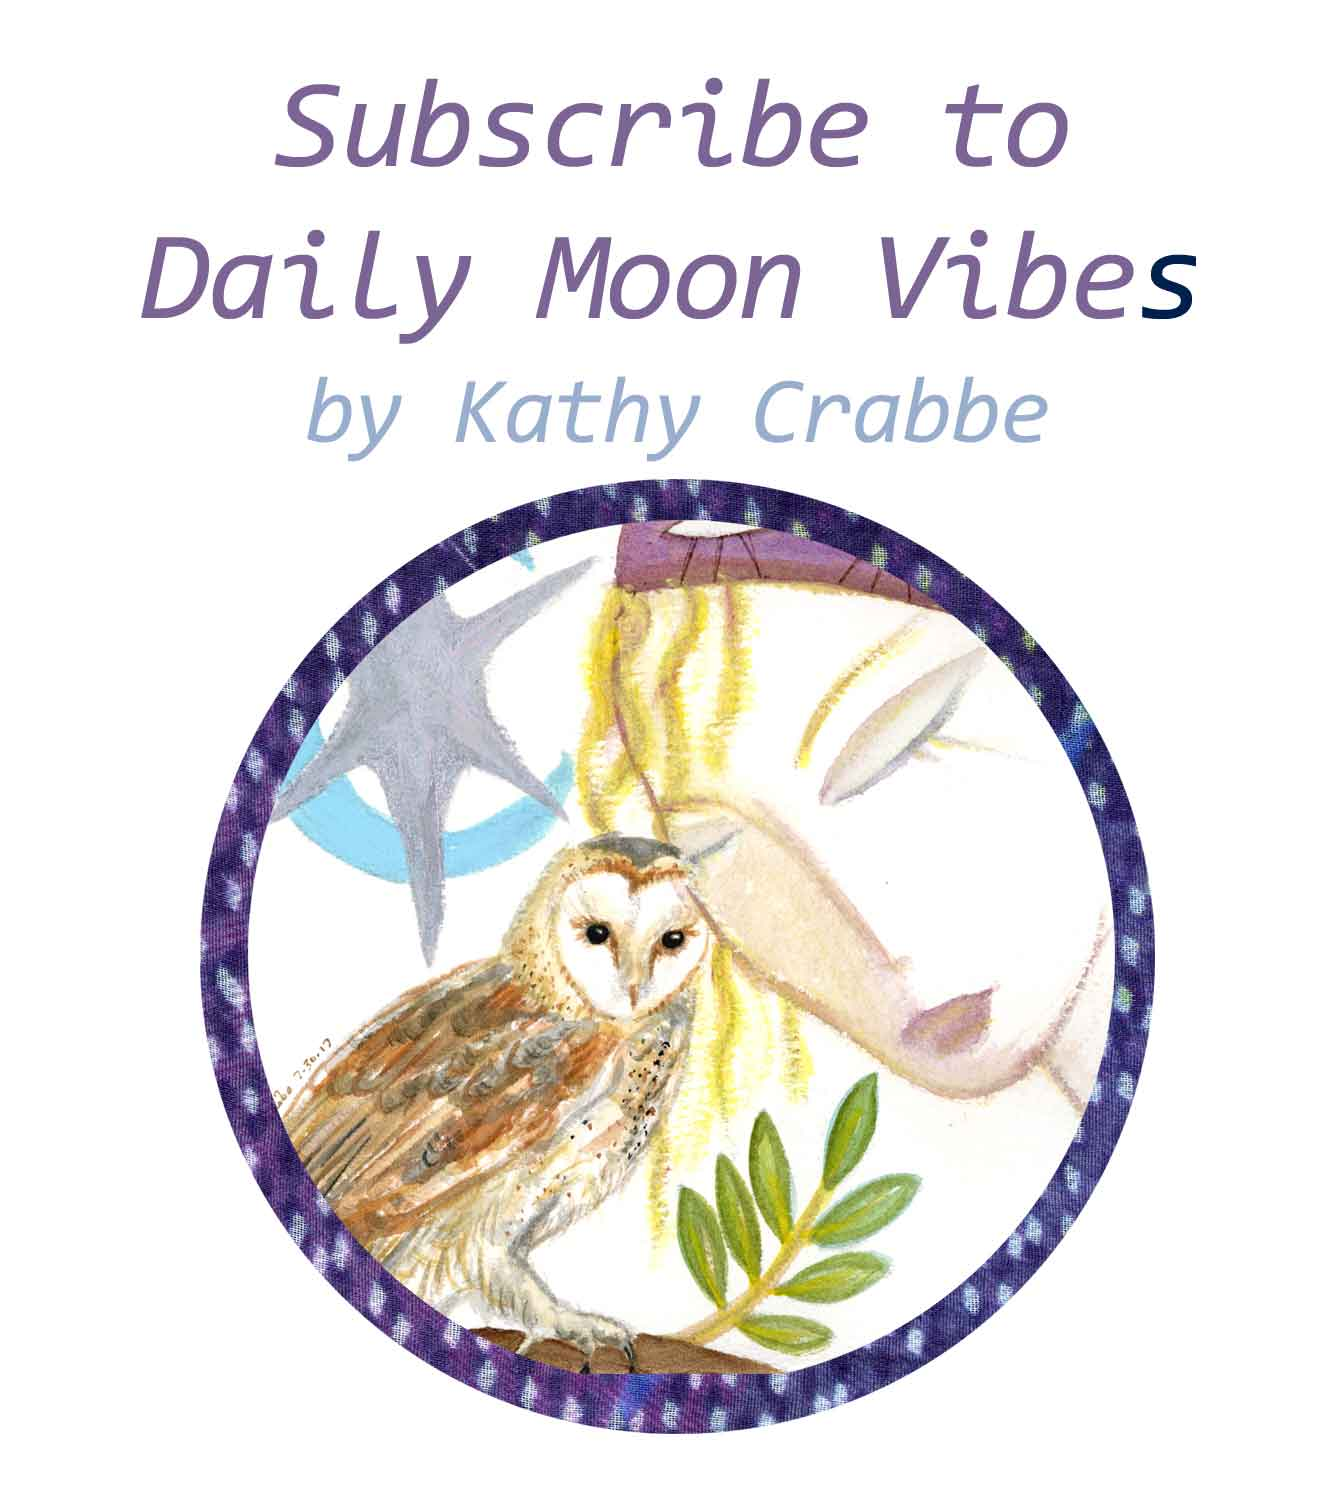 Subscribe to Daily Moon Vibes